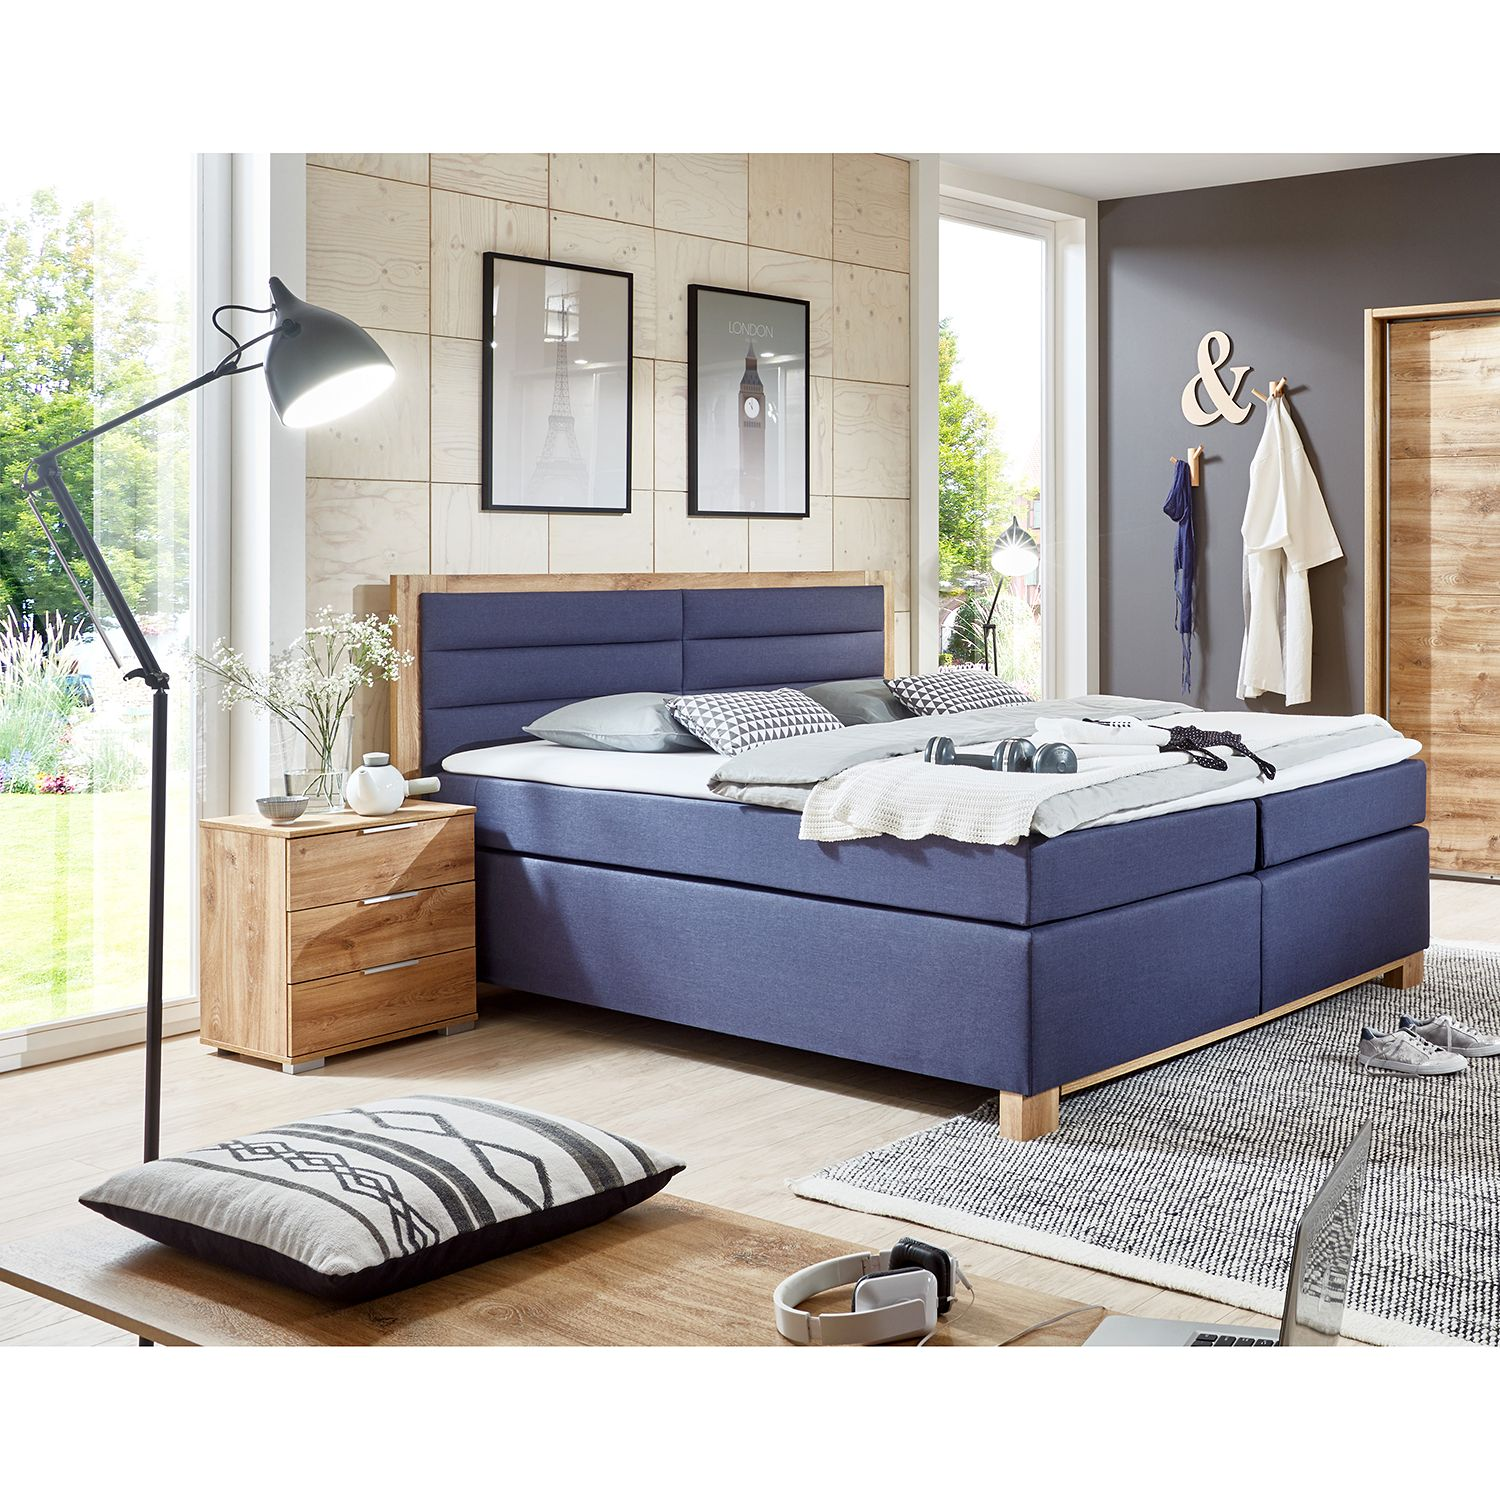 17 sparen boxspringbett ohio von wimex nur 999 99 cherry m bel home24. Black Bedroom Furniture Sets. Home Design Ideas